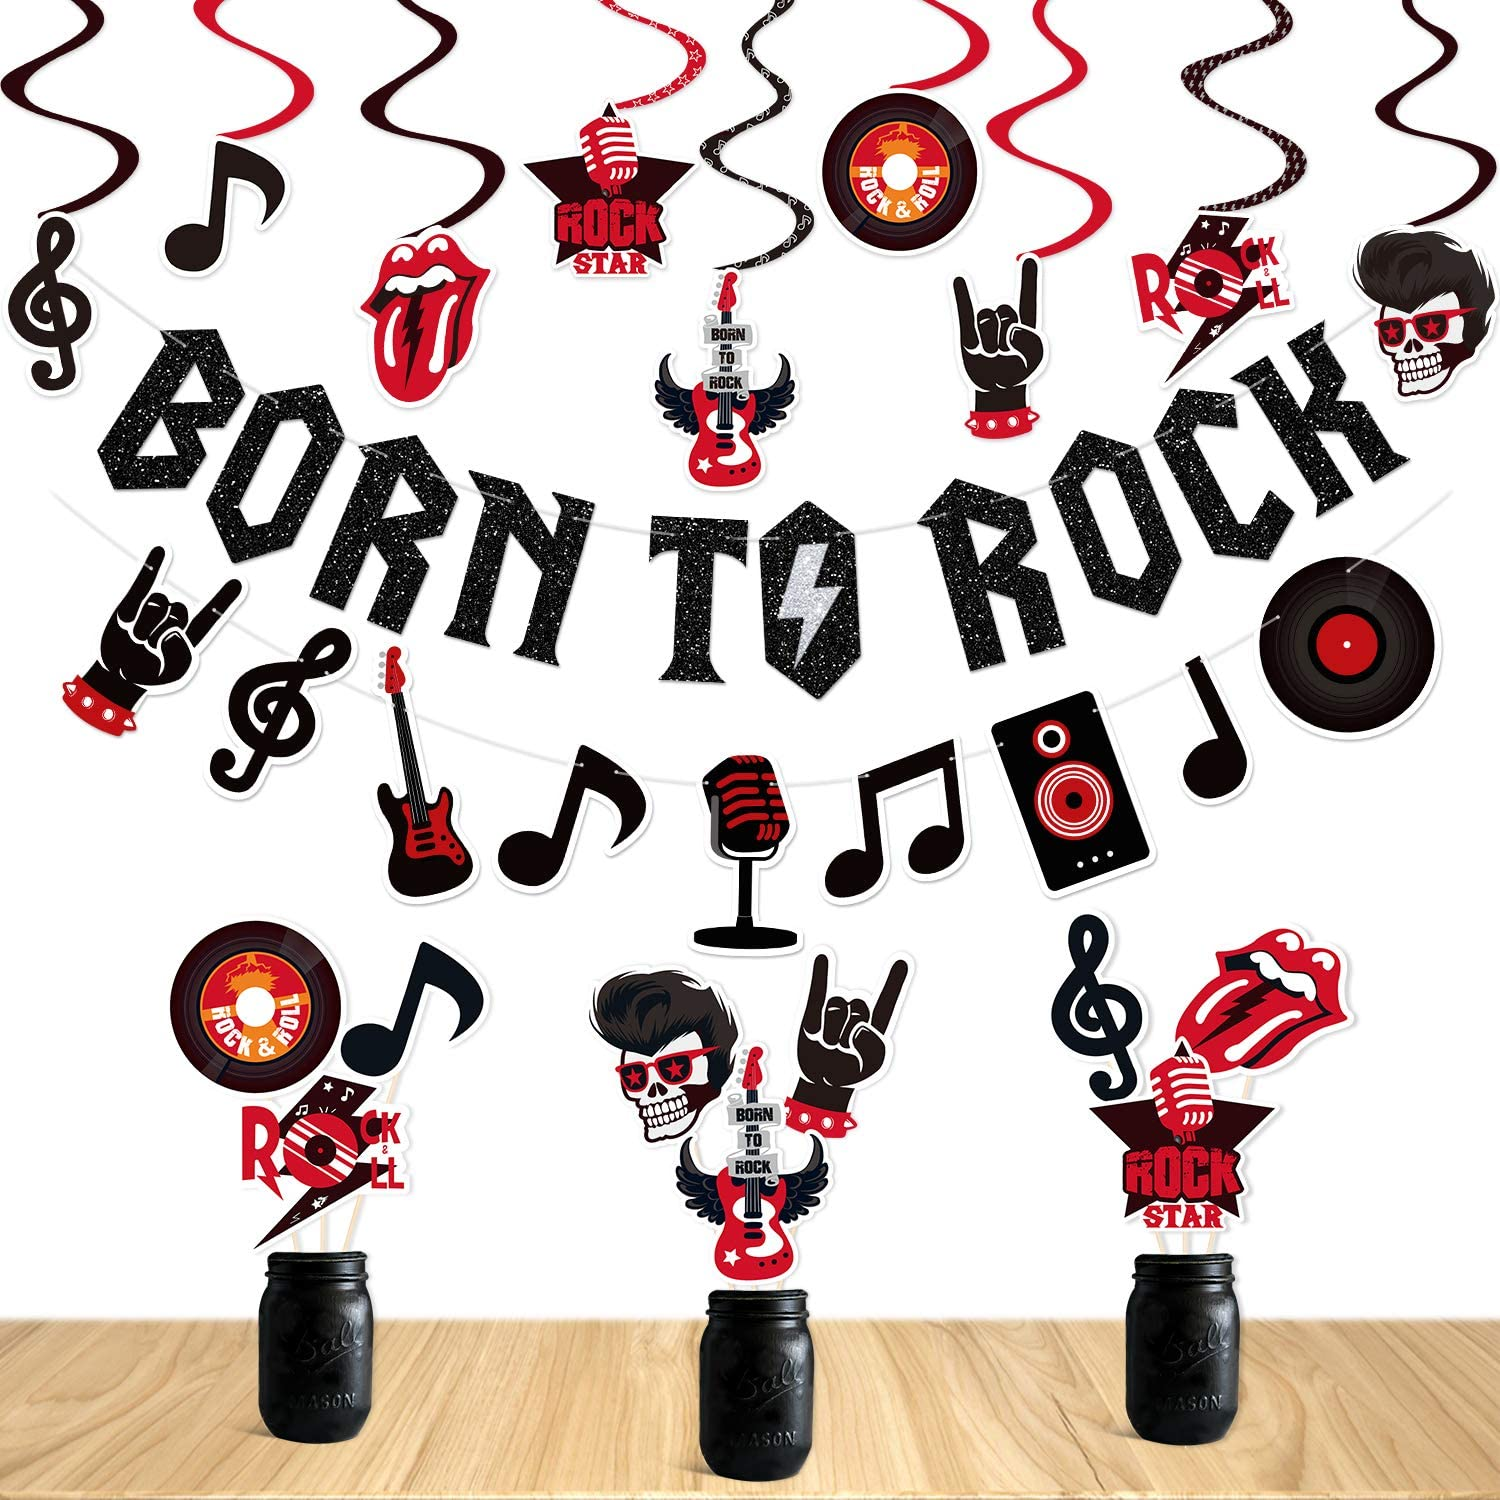 Rock and Roll Party Decorations Set Born to Rock Glitter Banner Rock and Roll Hanging Swirls Rock Star Centerpiece Sticks 1950's Rock and Roll Party Decorations Music Theme Baby 1st Birthday Party Supplies 50s 60s Rock Party Favors Record Wall Decor